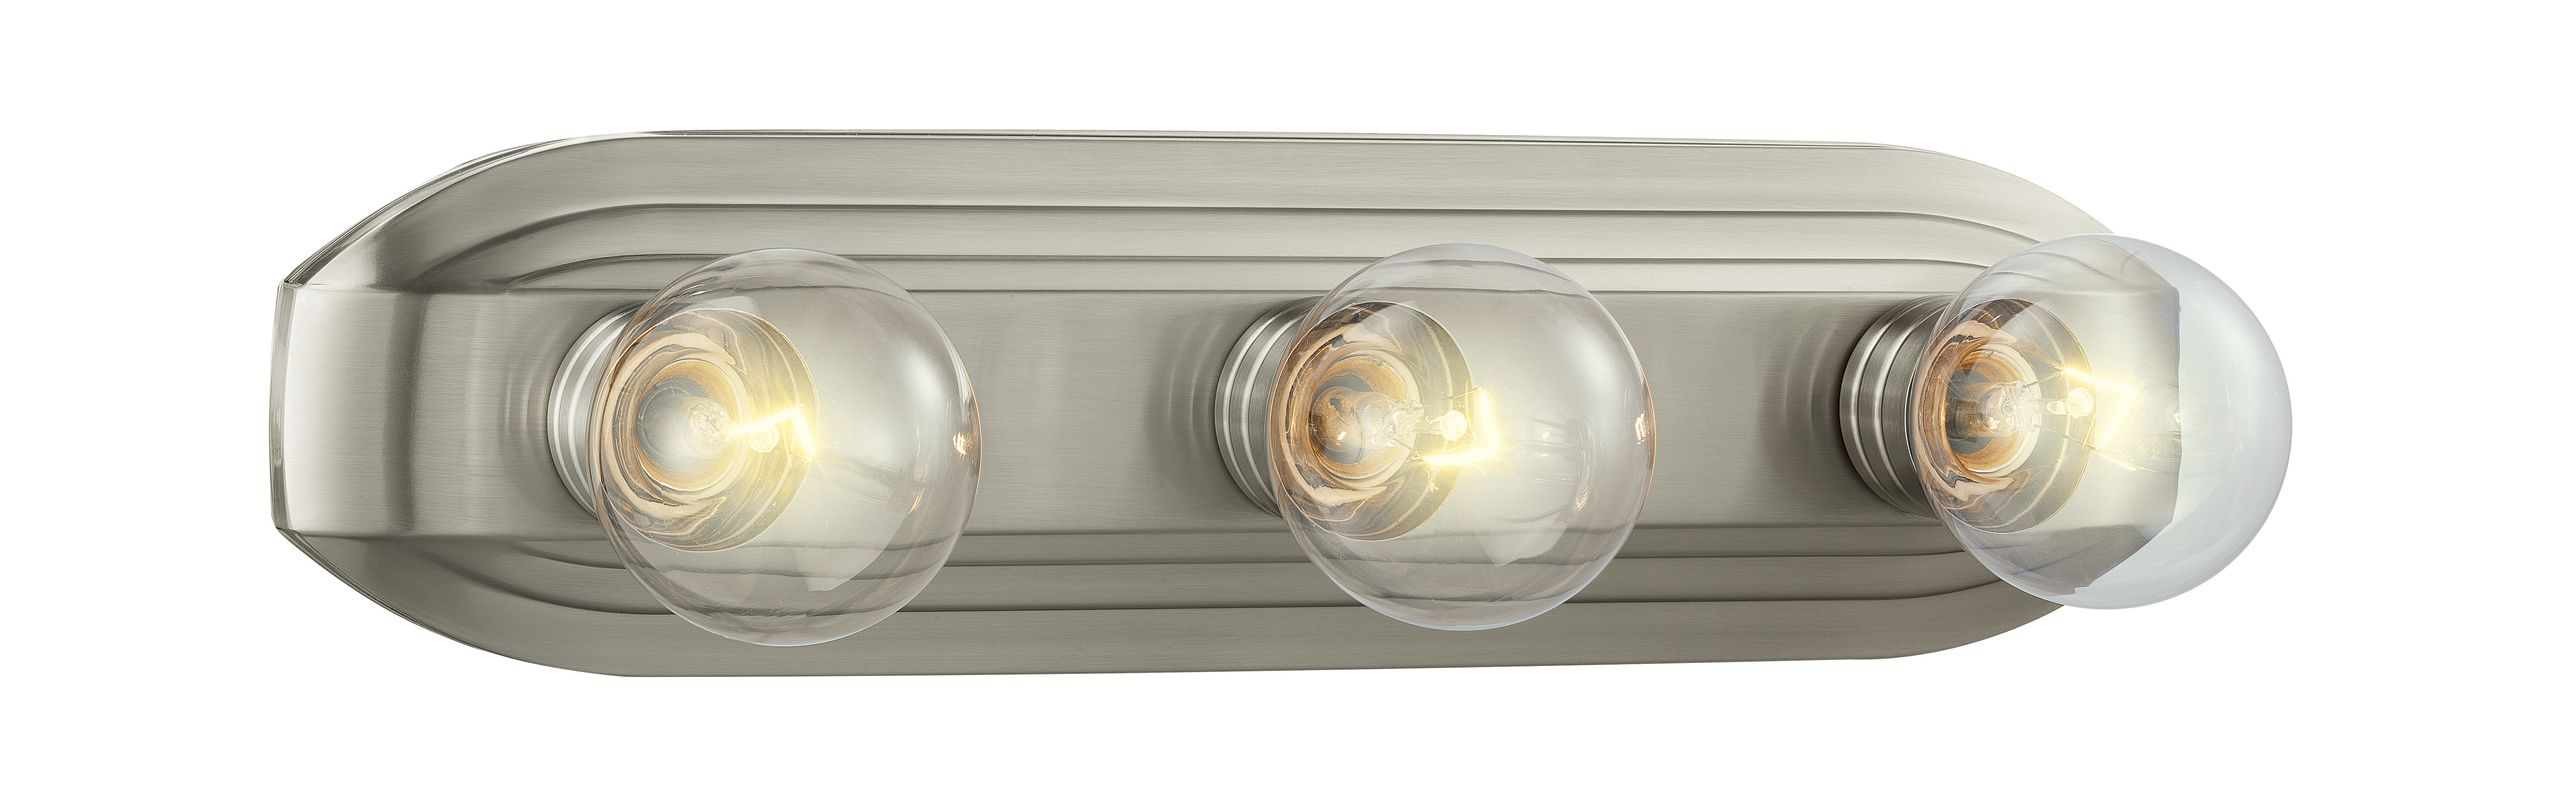 Designers Fountain 6613 Three Light 300 Watt Bathroom Fixture from the